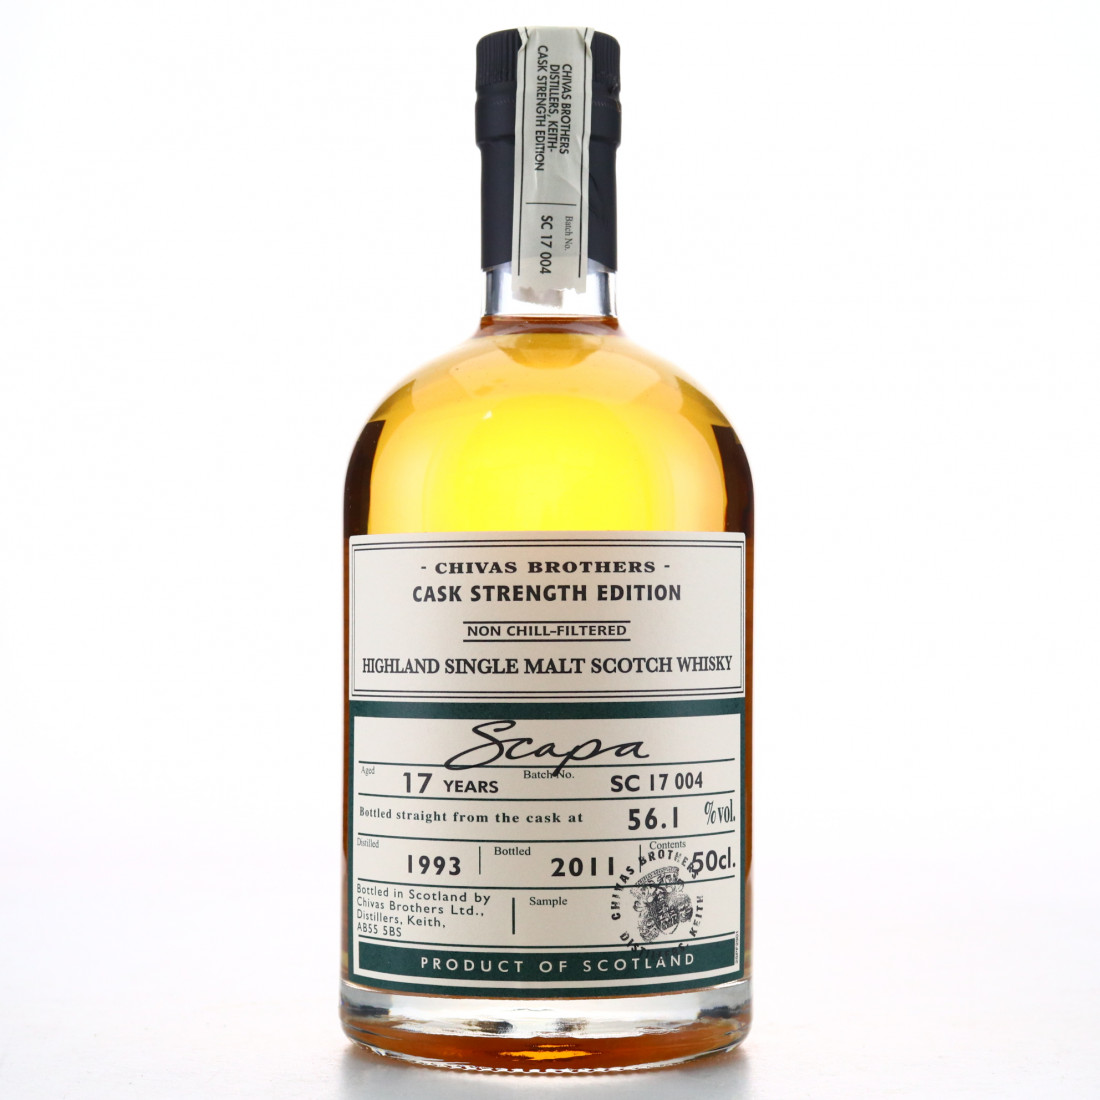 Scapa 1993 Cask Strength 17 Year Old Batch #4